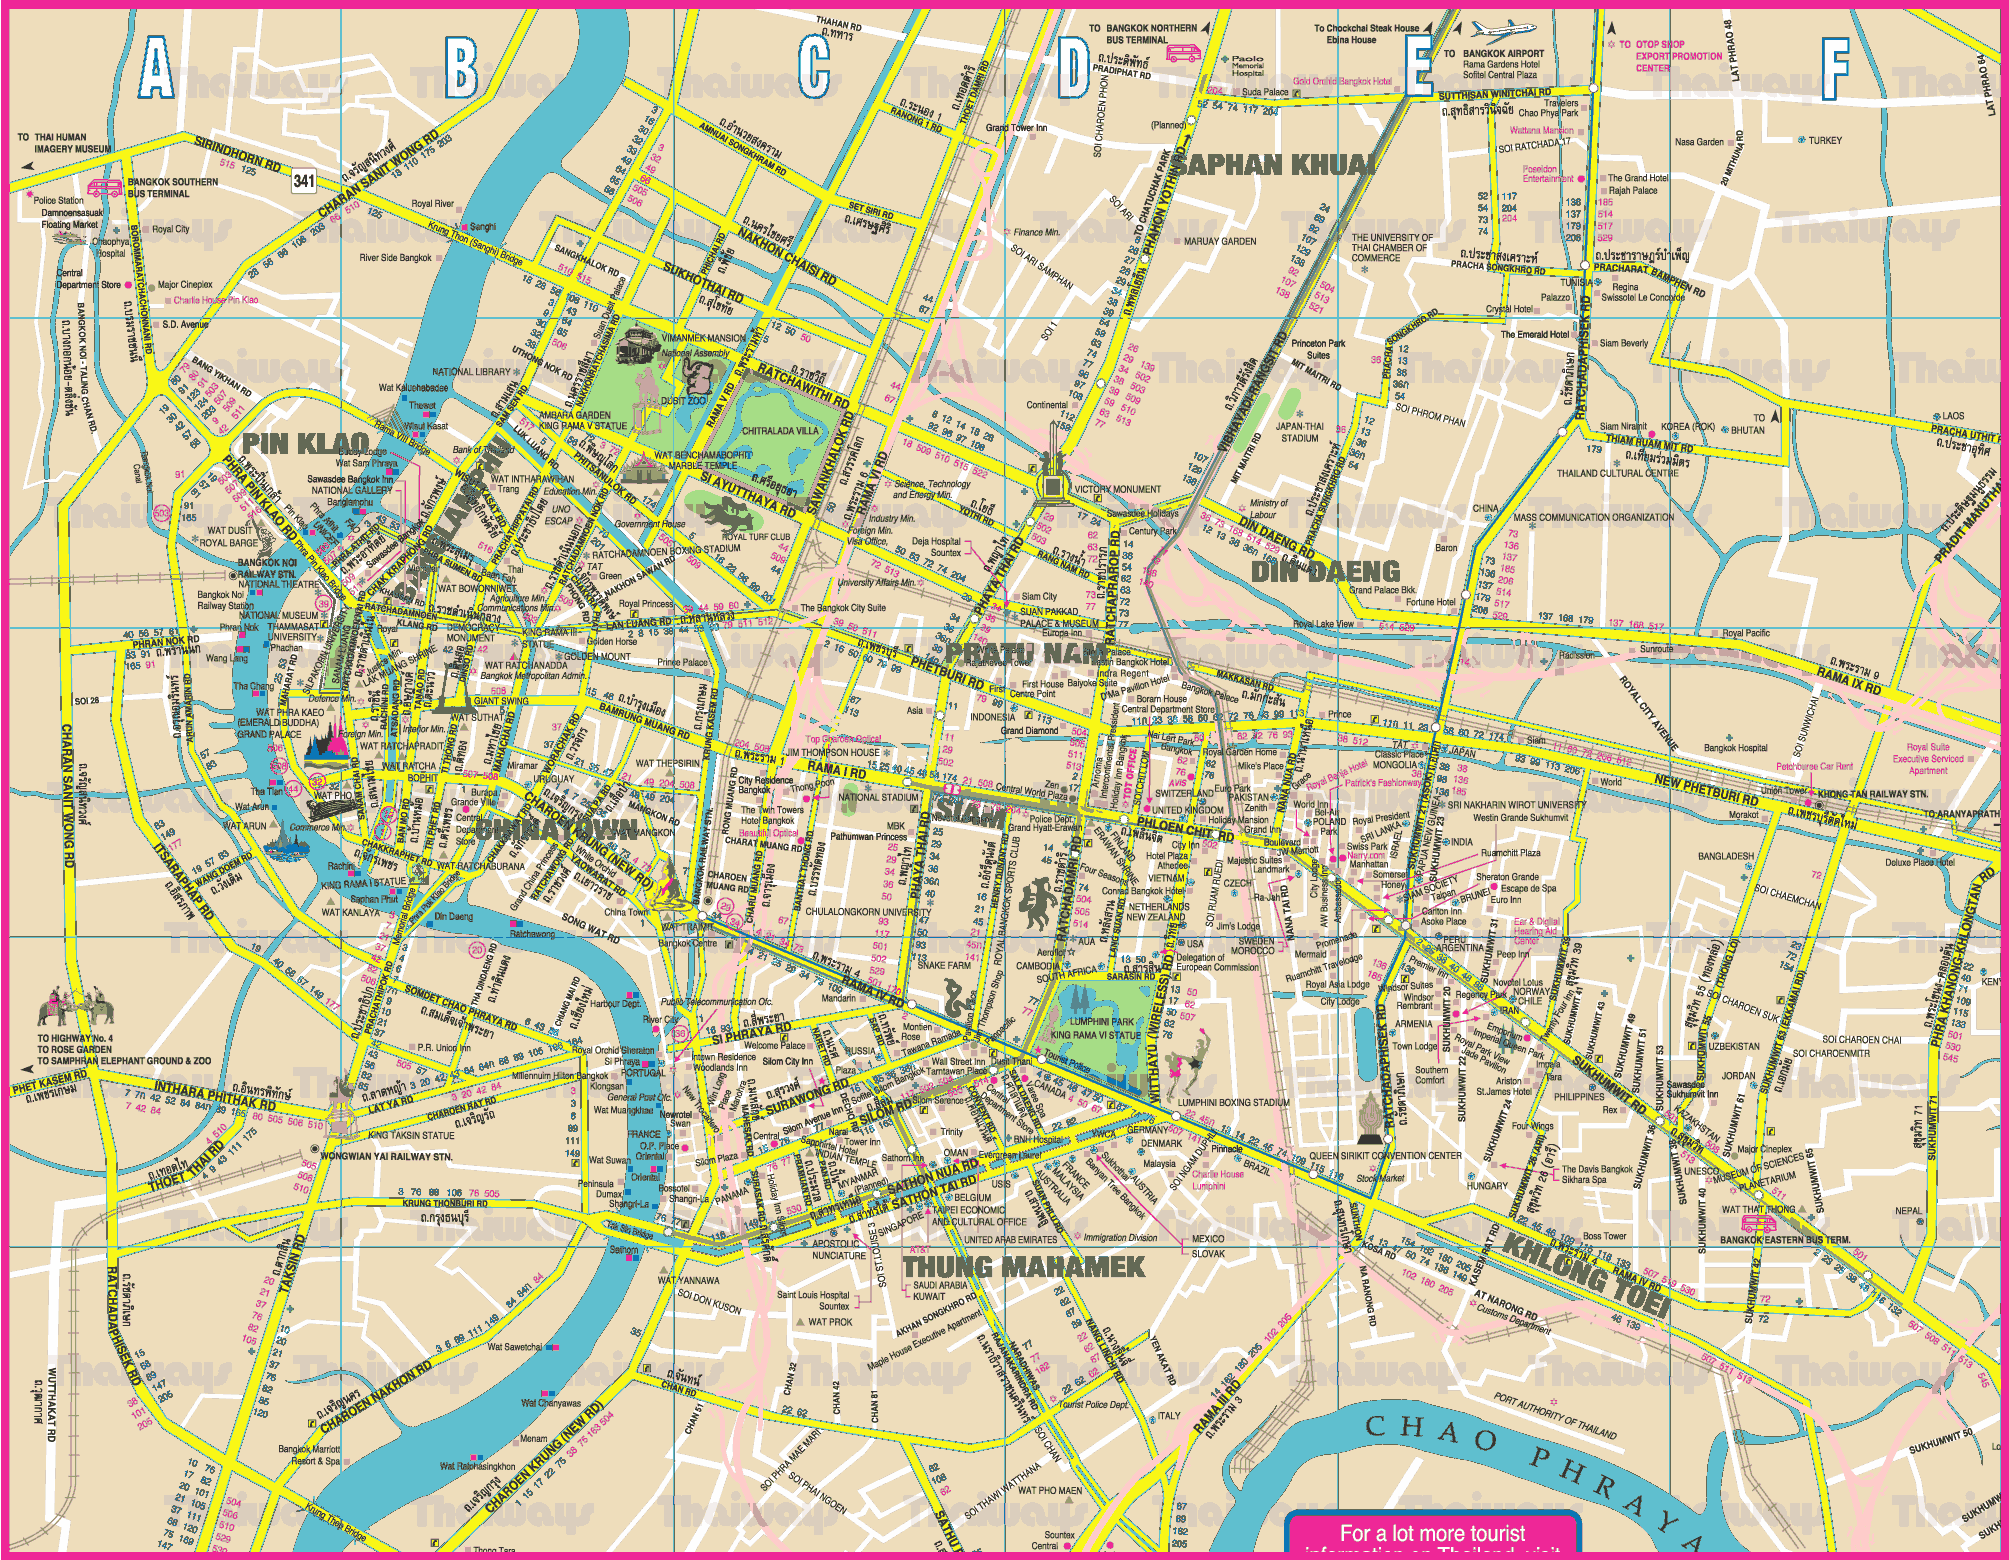 Bangkok Map Detailed City and Metro Maps of Bangkok for Download